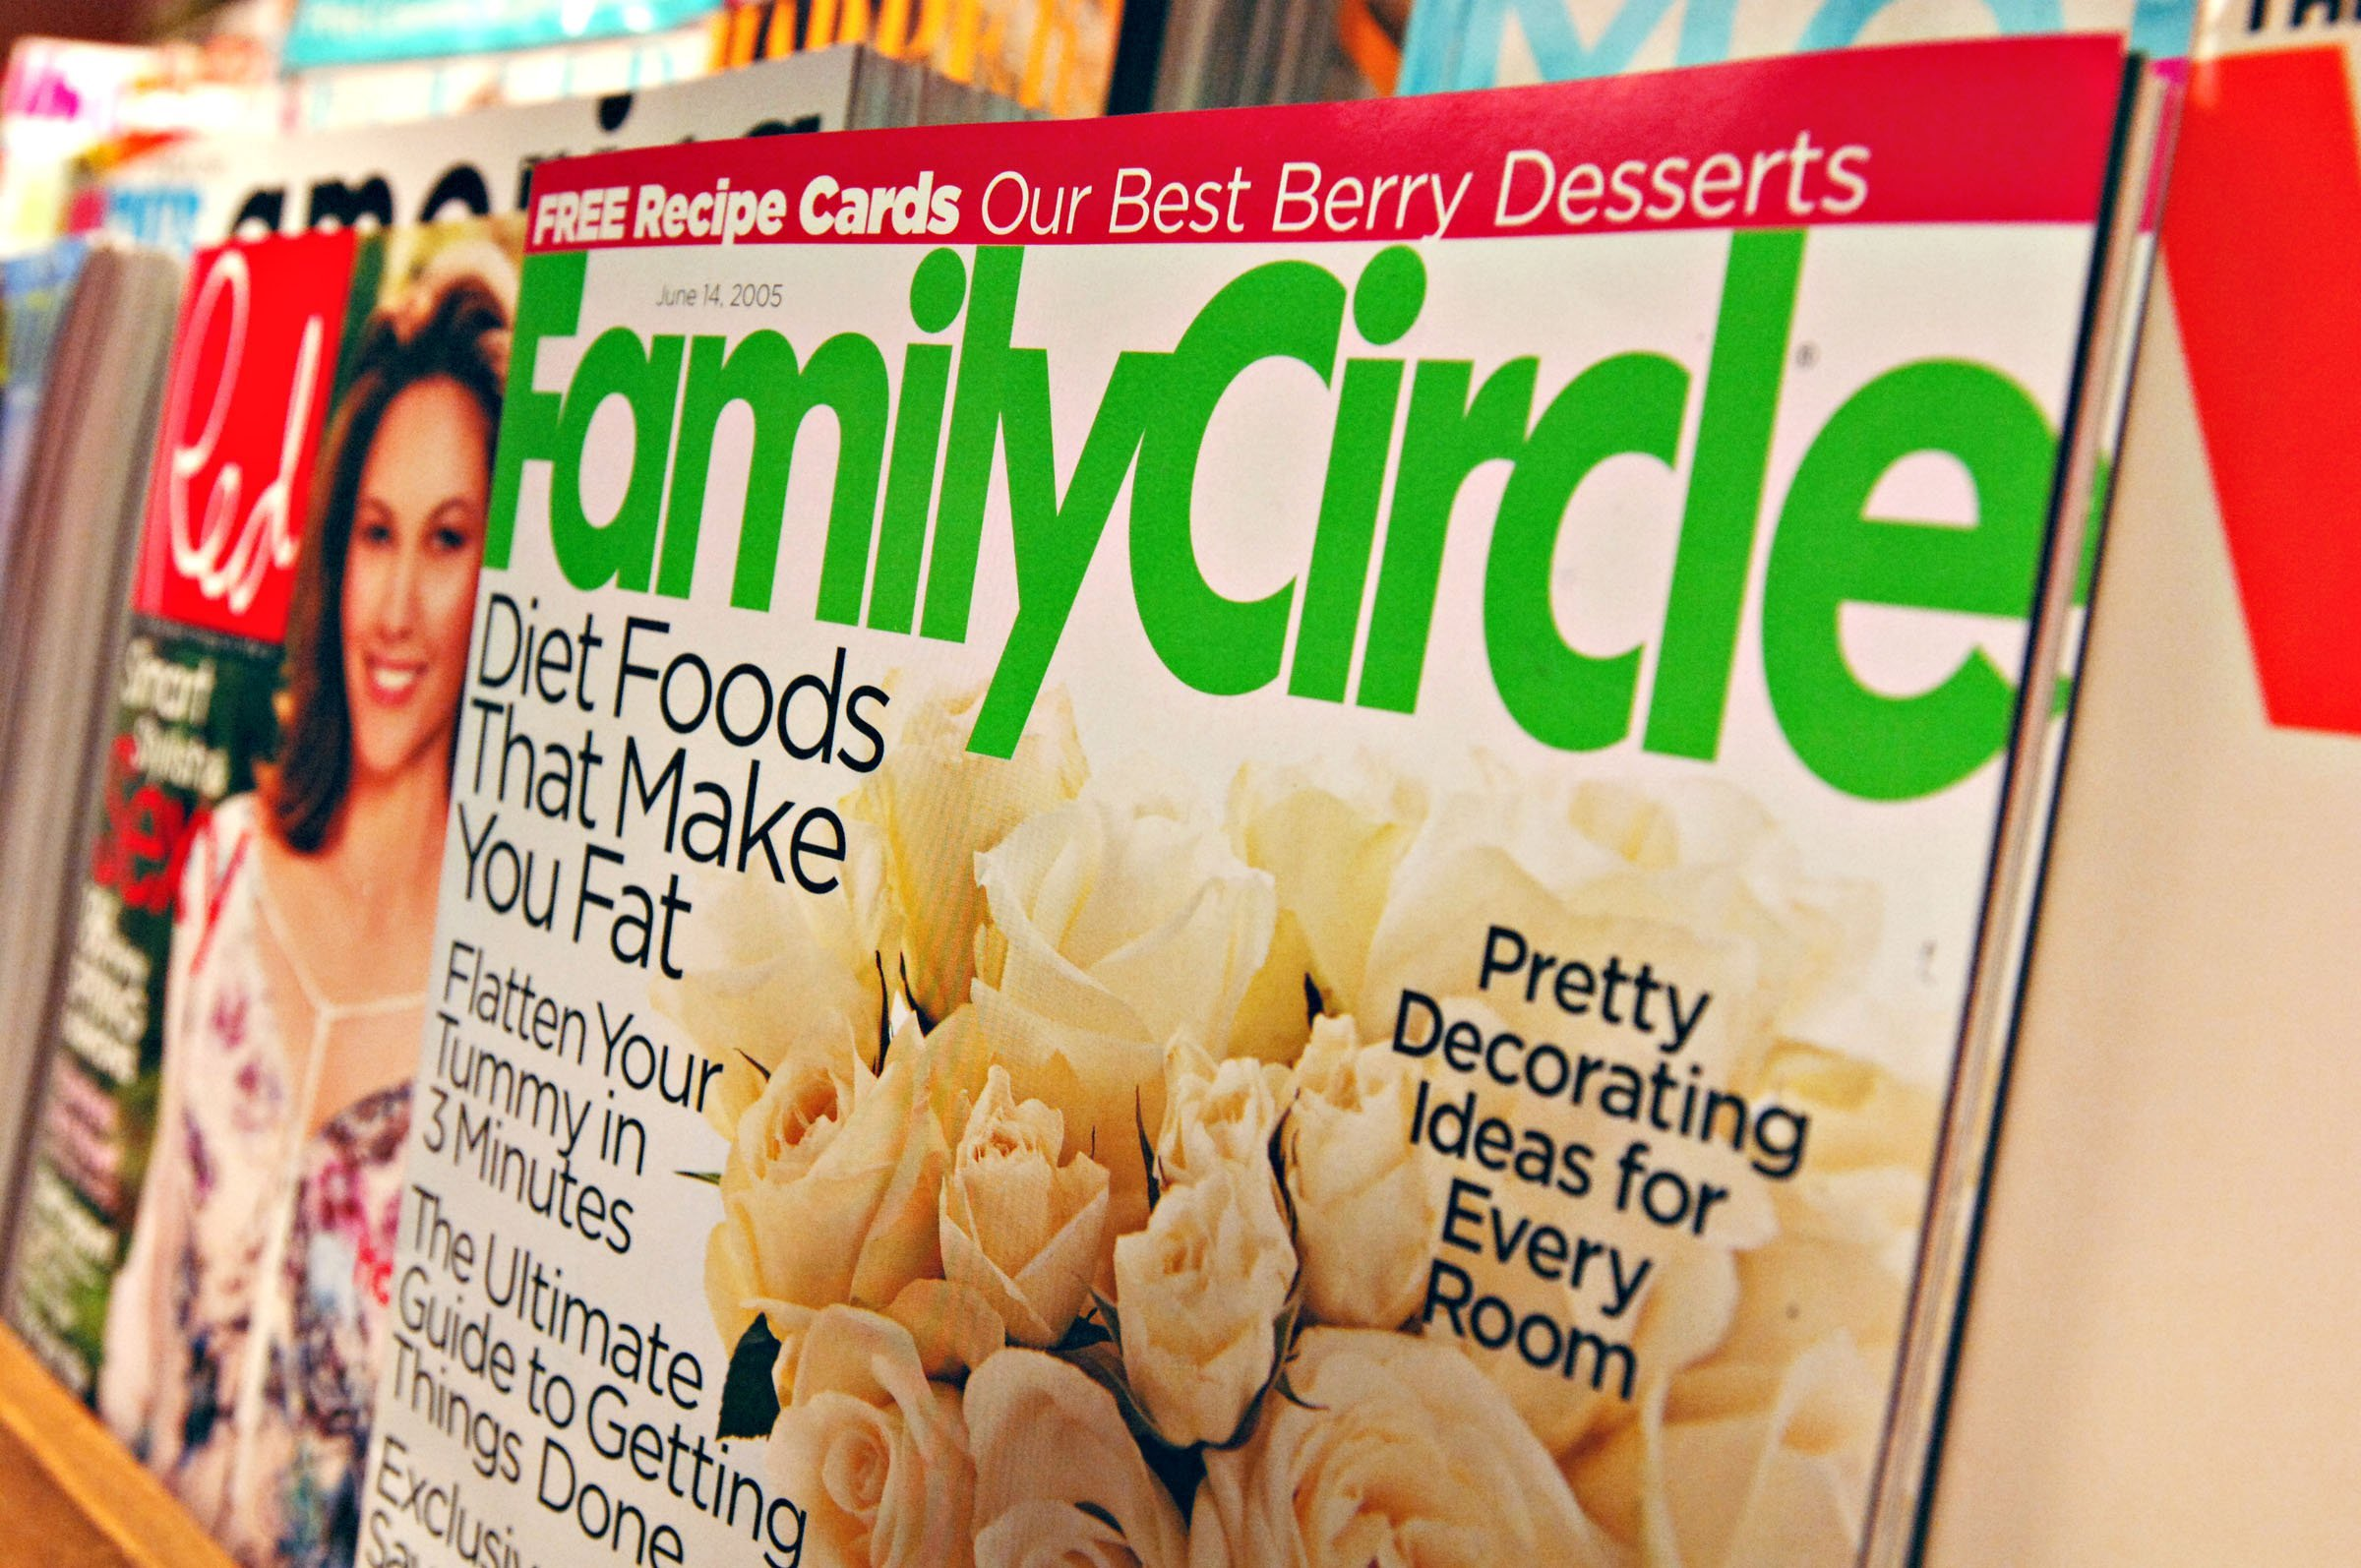 Family Circle magazine to shut down after December issue